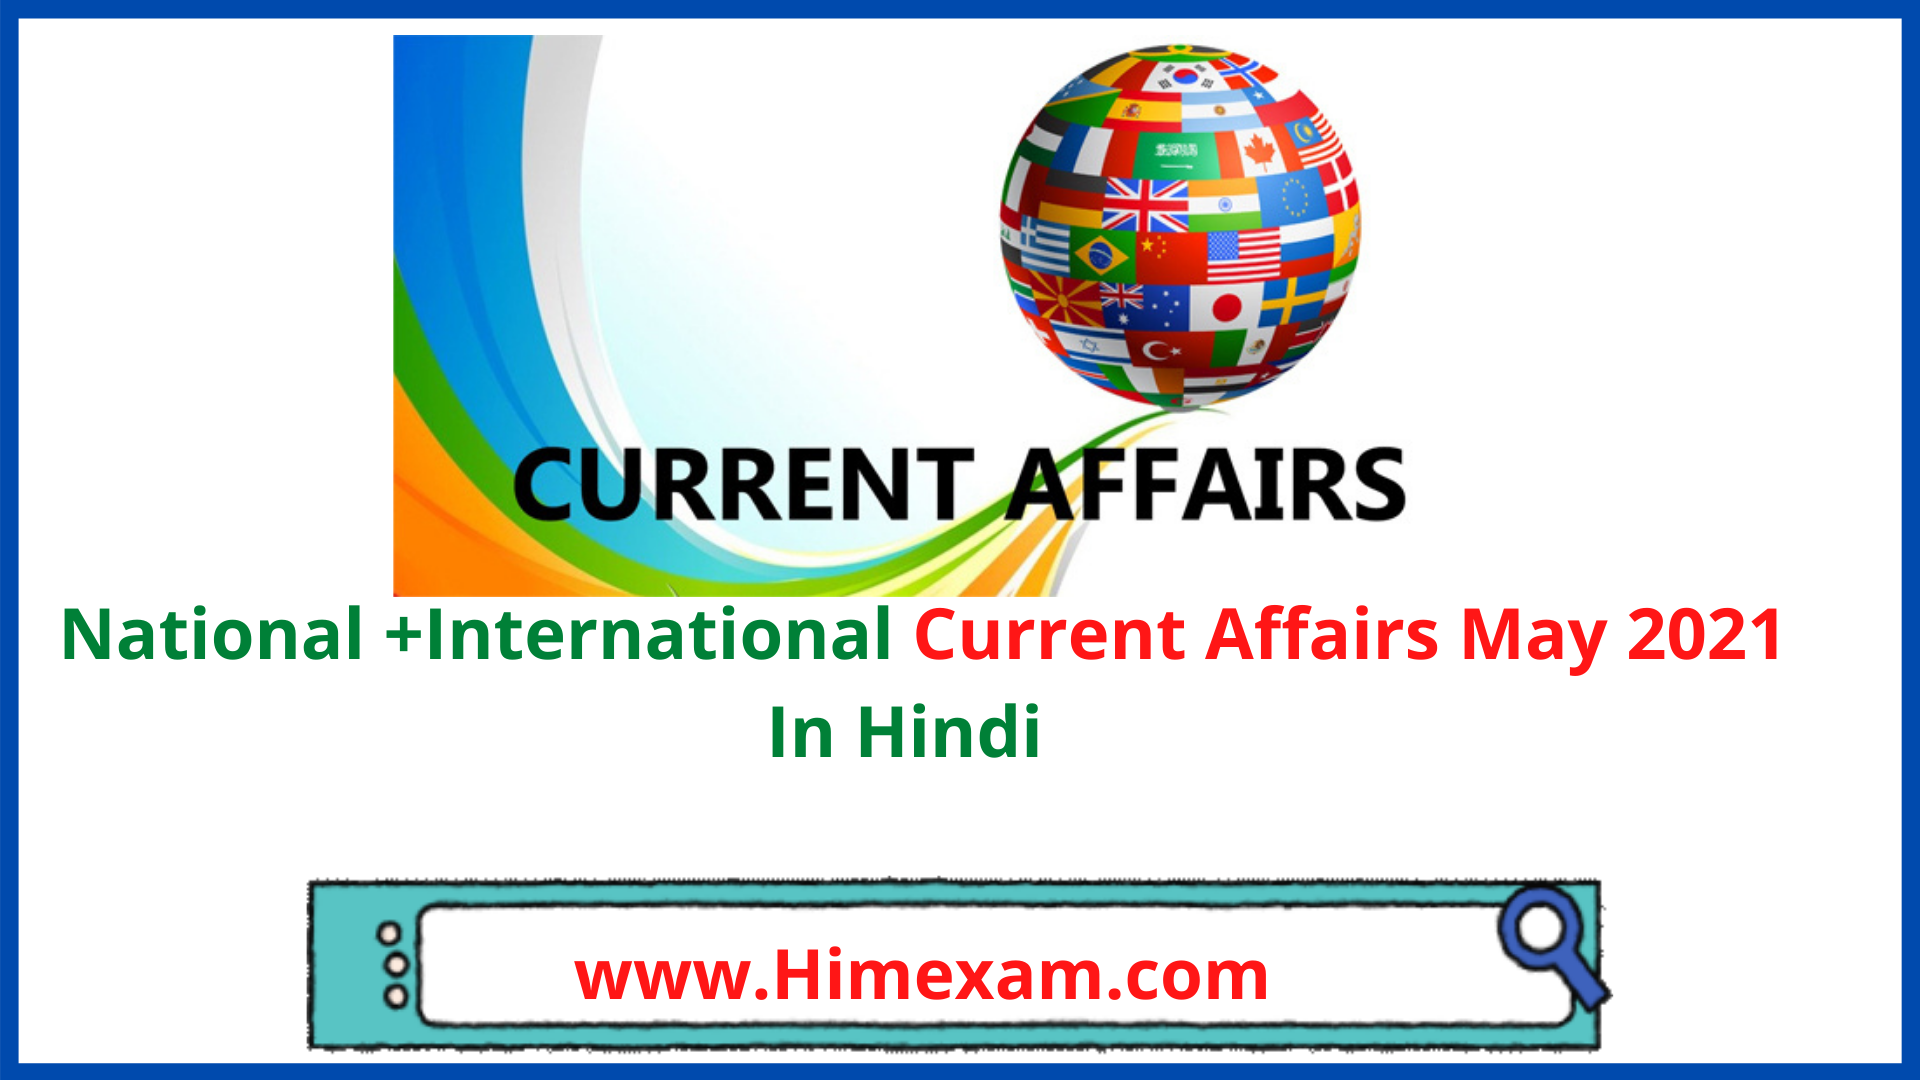 National +International Current Affairs May 2021 In Hindi